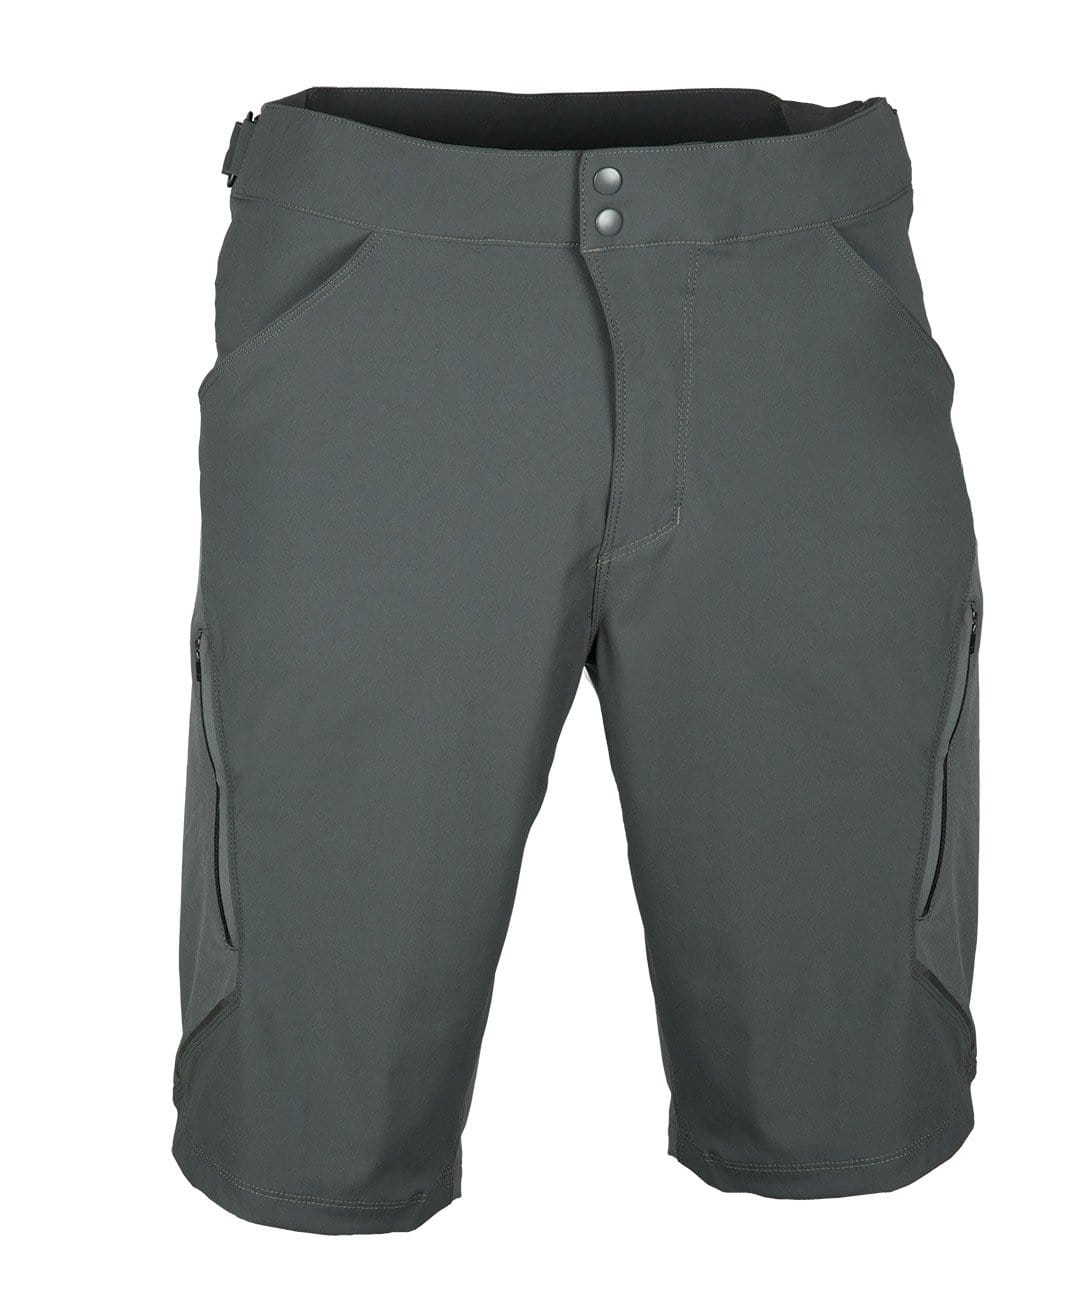 "Men's IMBA 12"" Shorts"